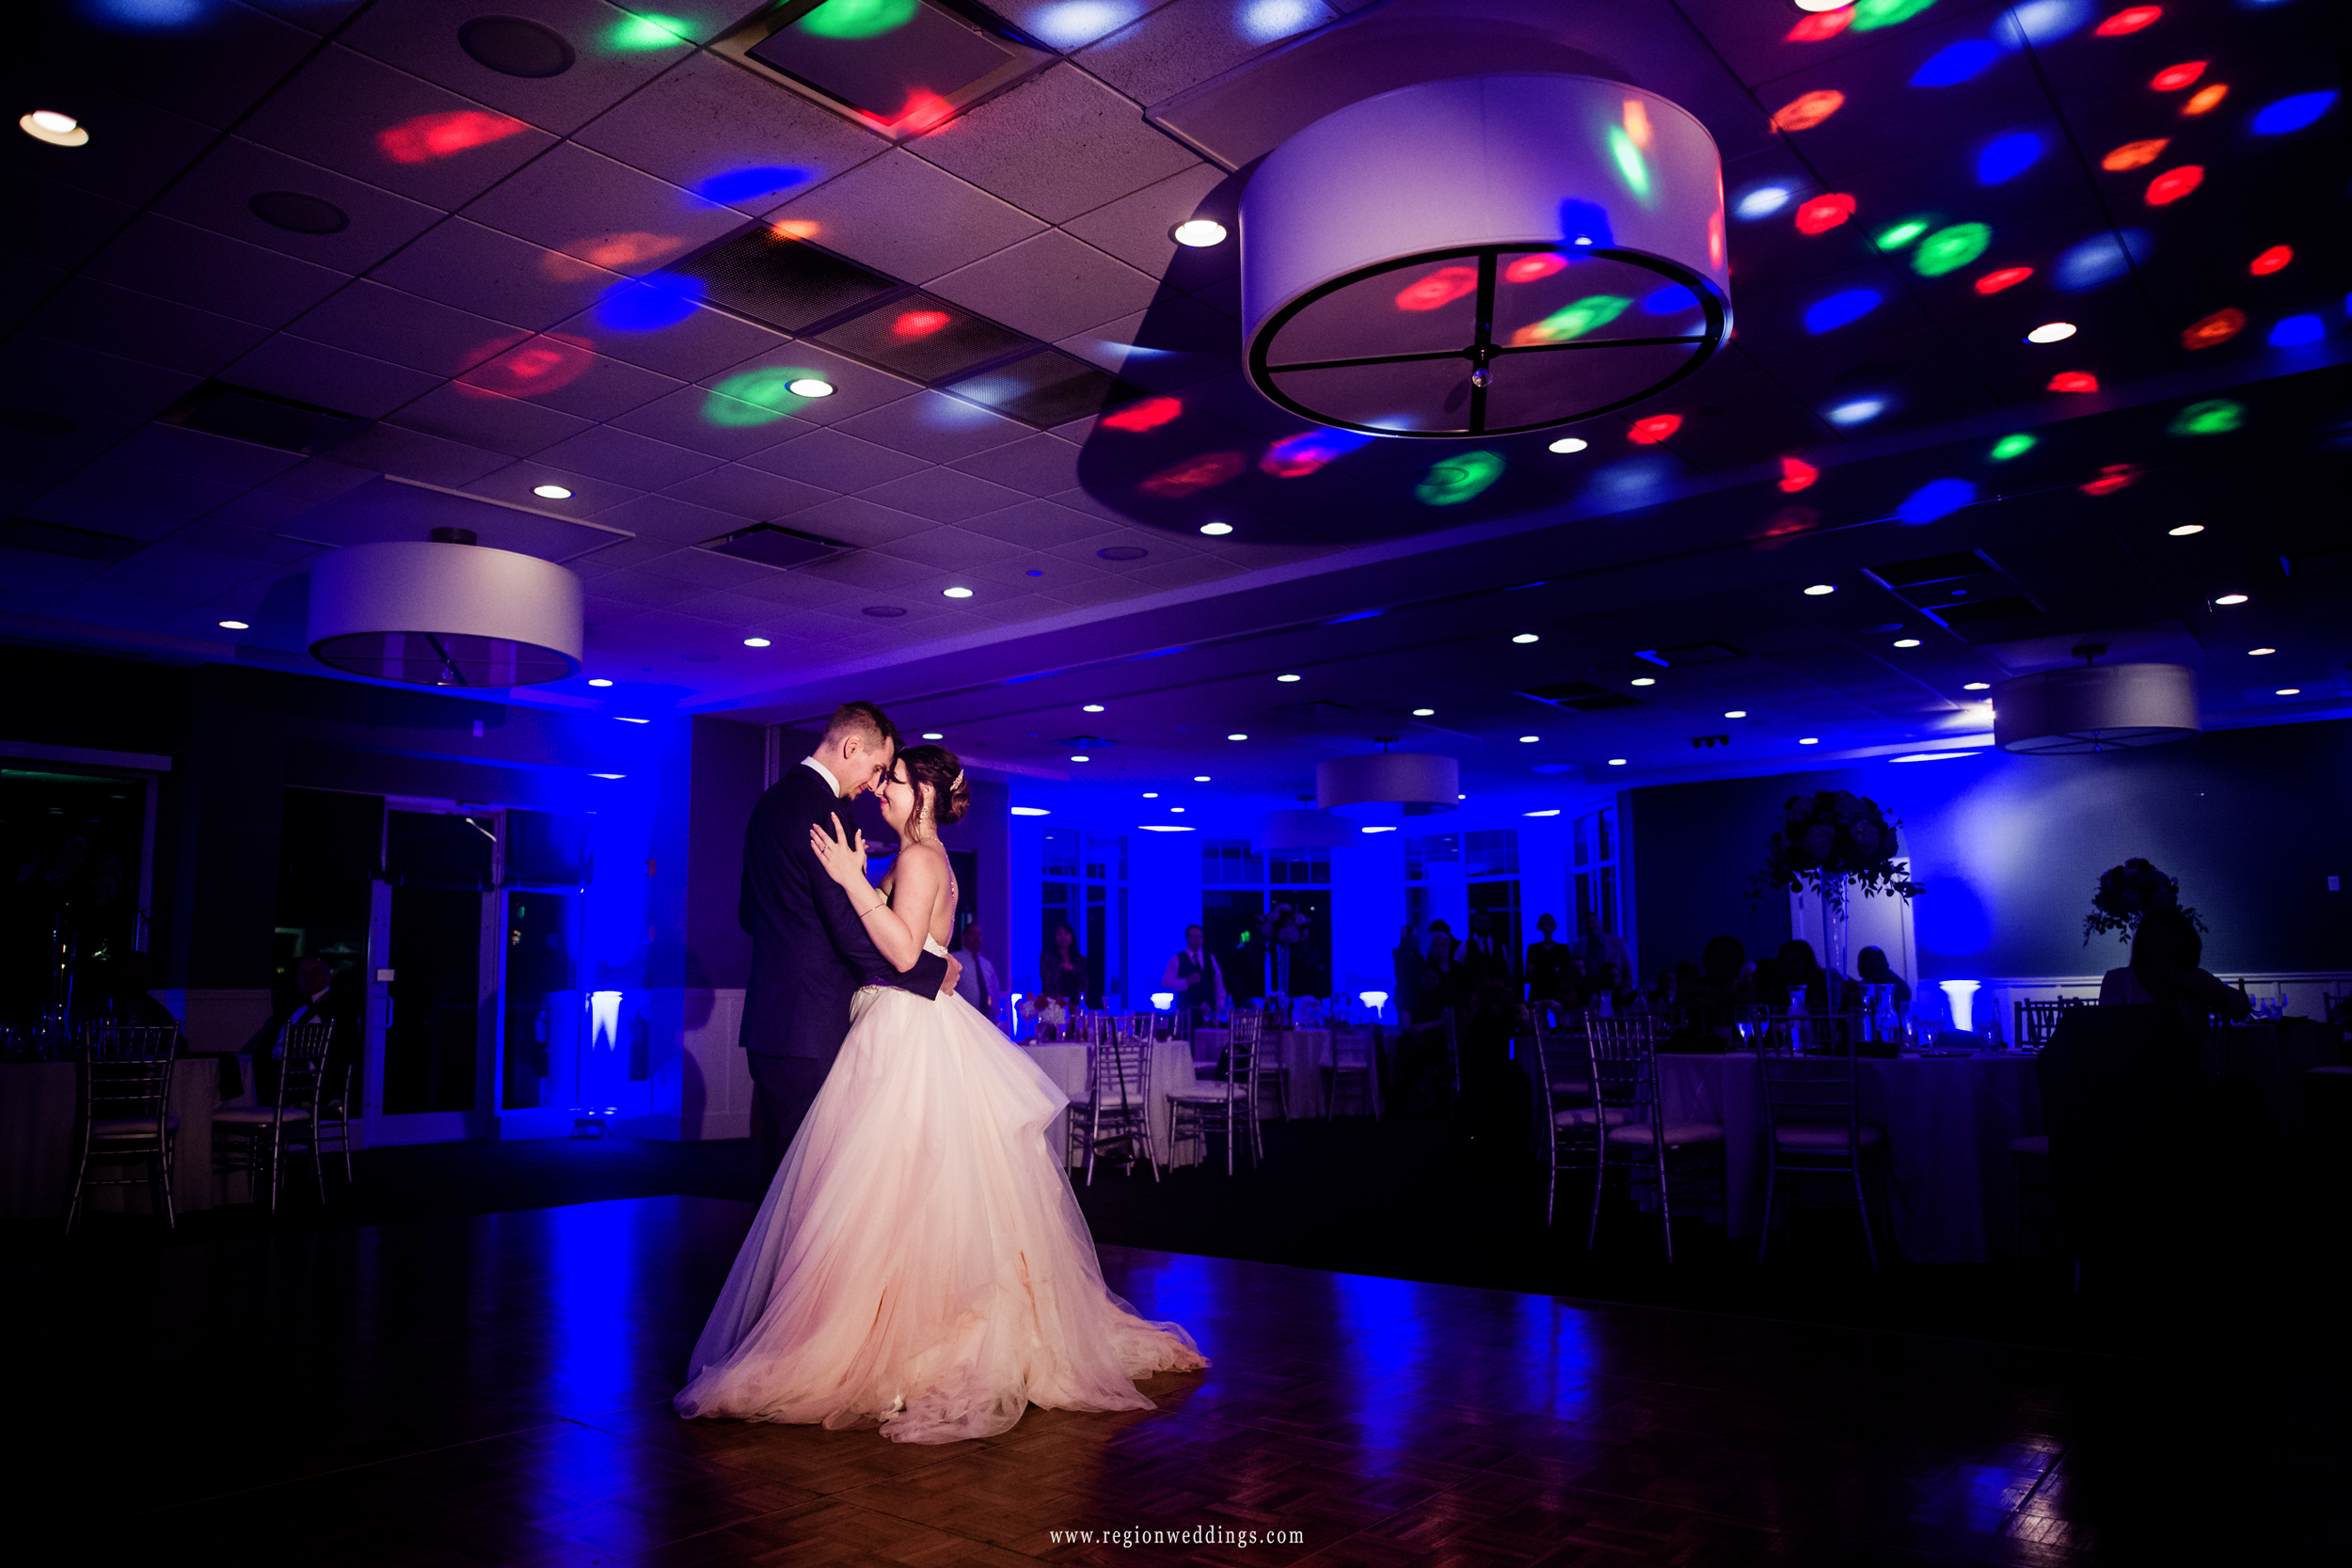 First dance for the bride and groom at Lighthouse in Cedar Lake.